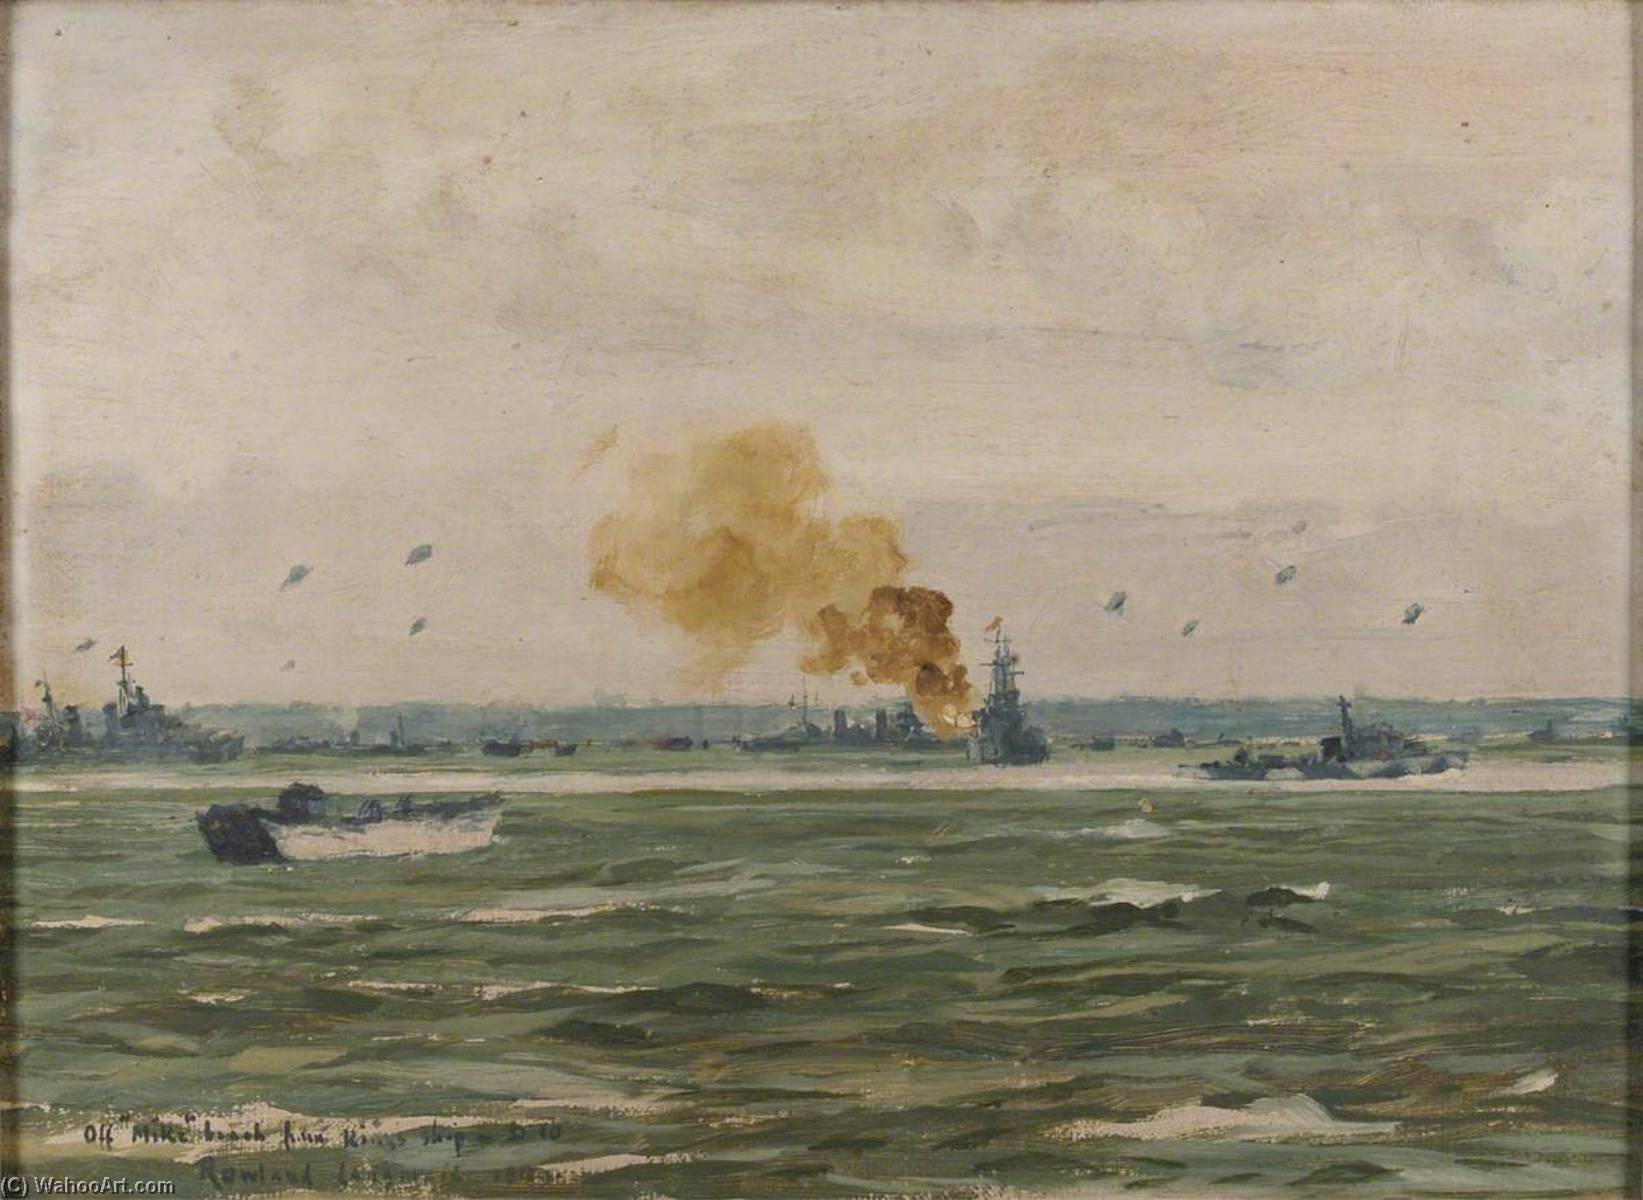 Off 'Mike' Beach from the King's Ship D10, 16 June 1944, Oil On Canvas by Rowland Langmaid